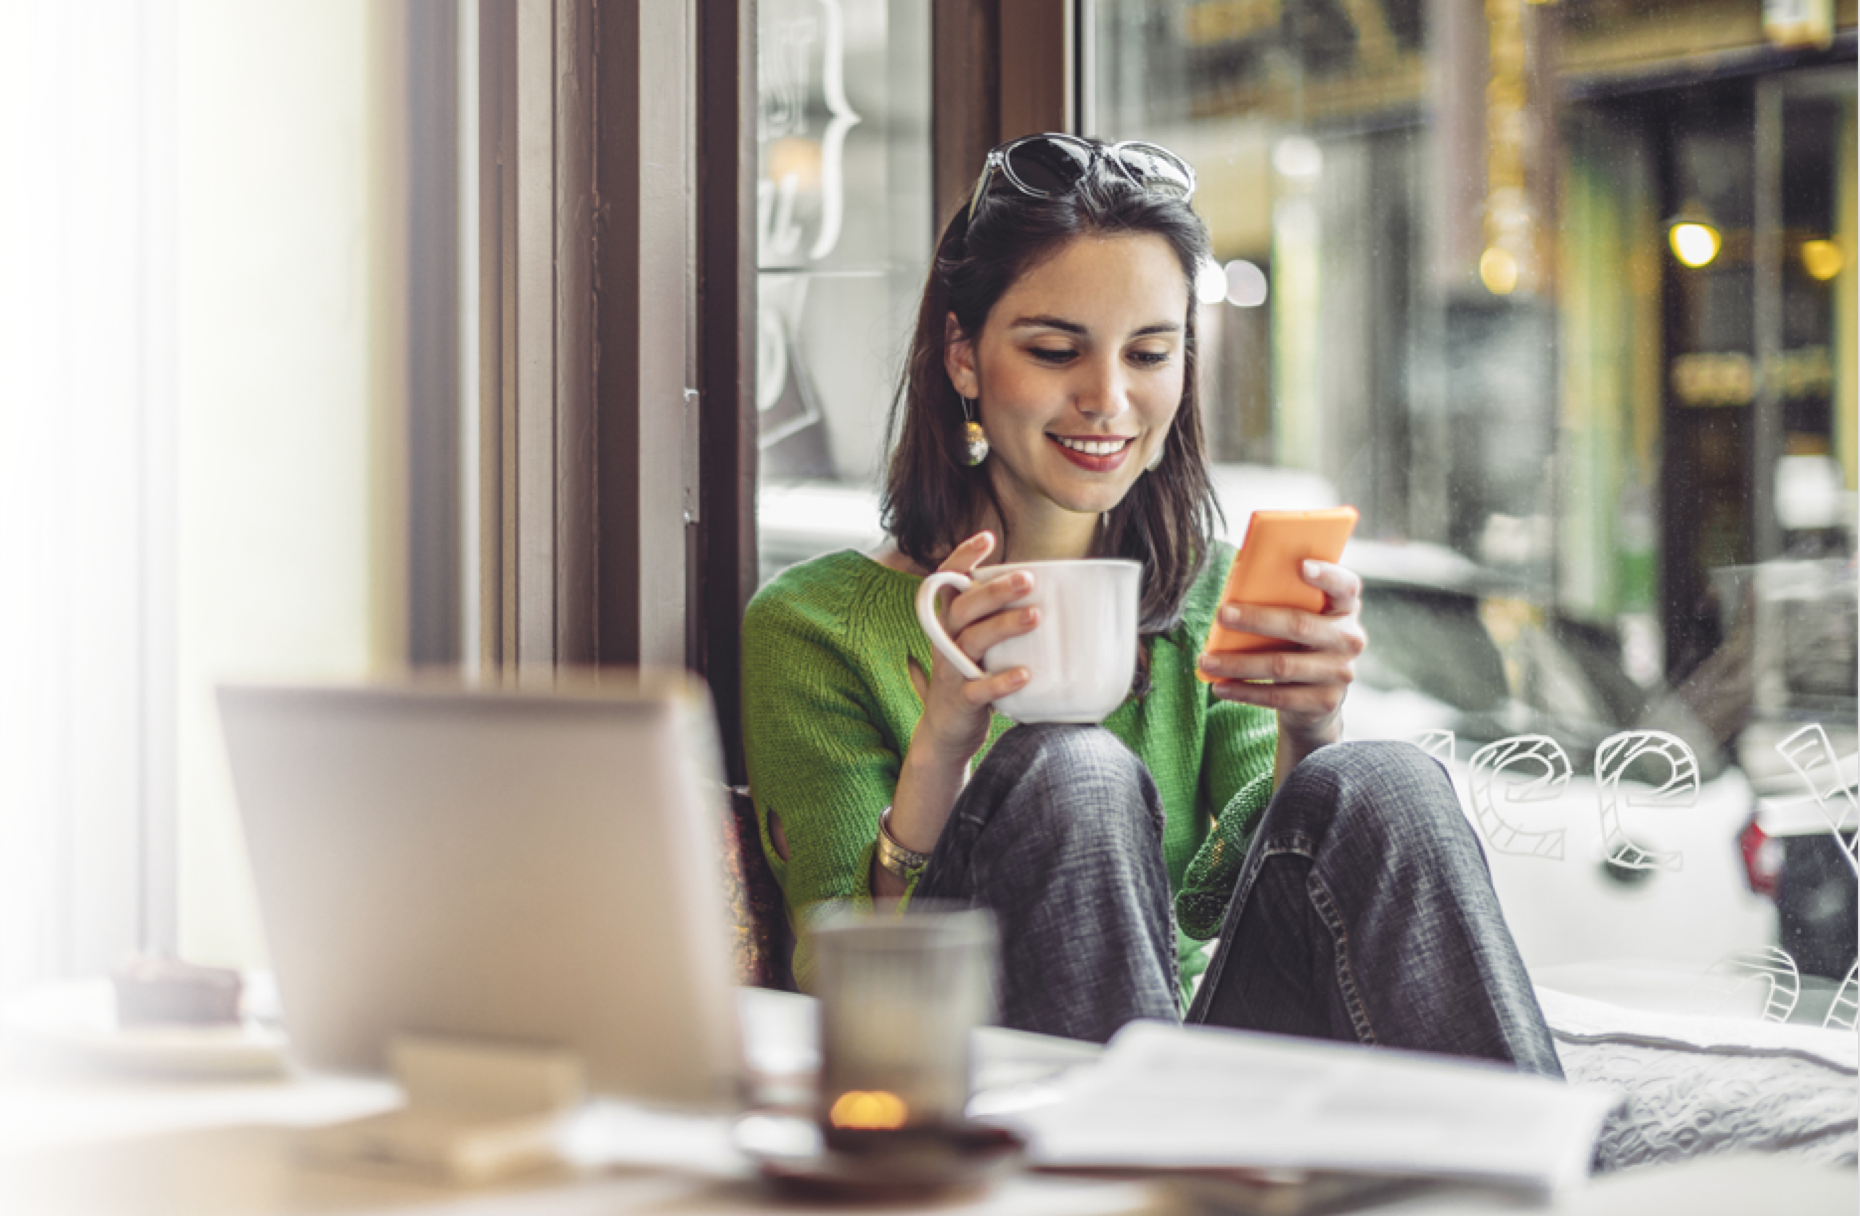 Female drinking coffee while mobile banking with Varo